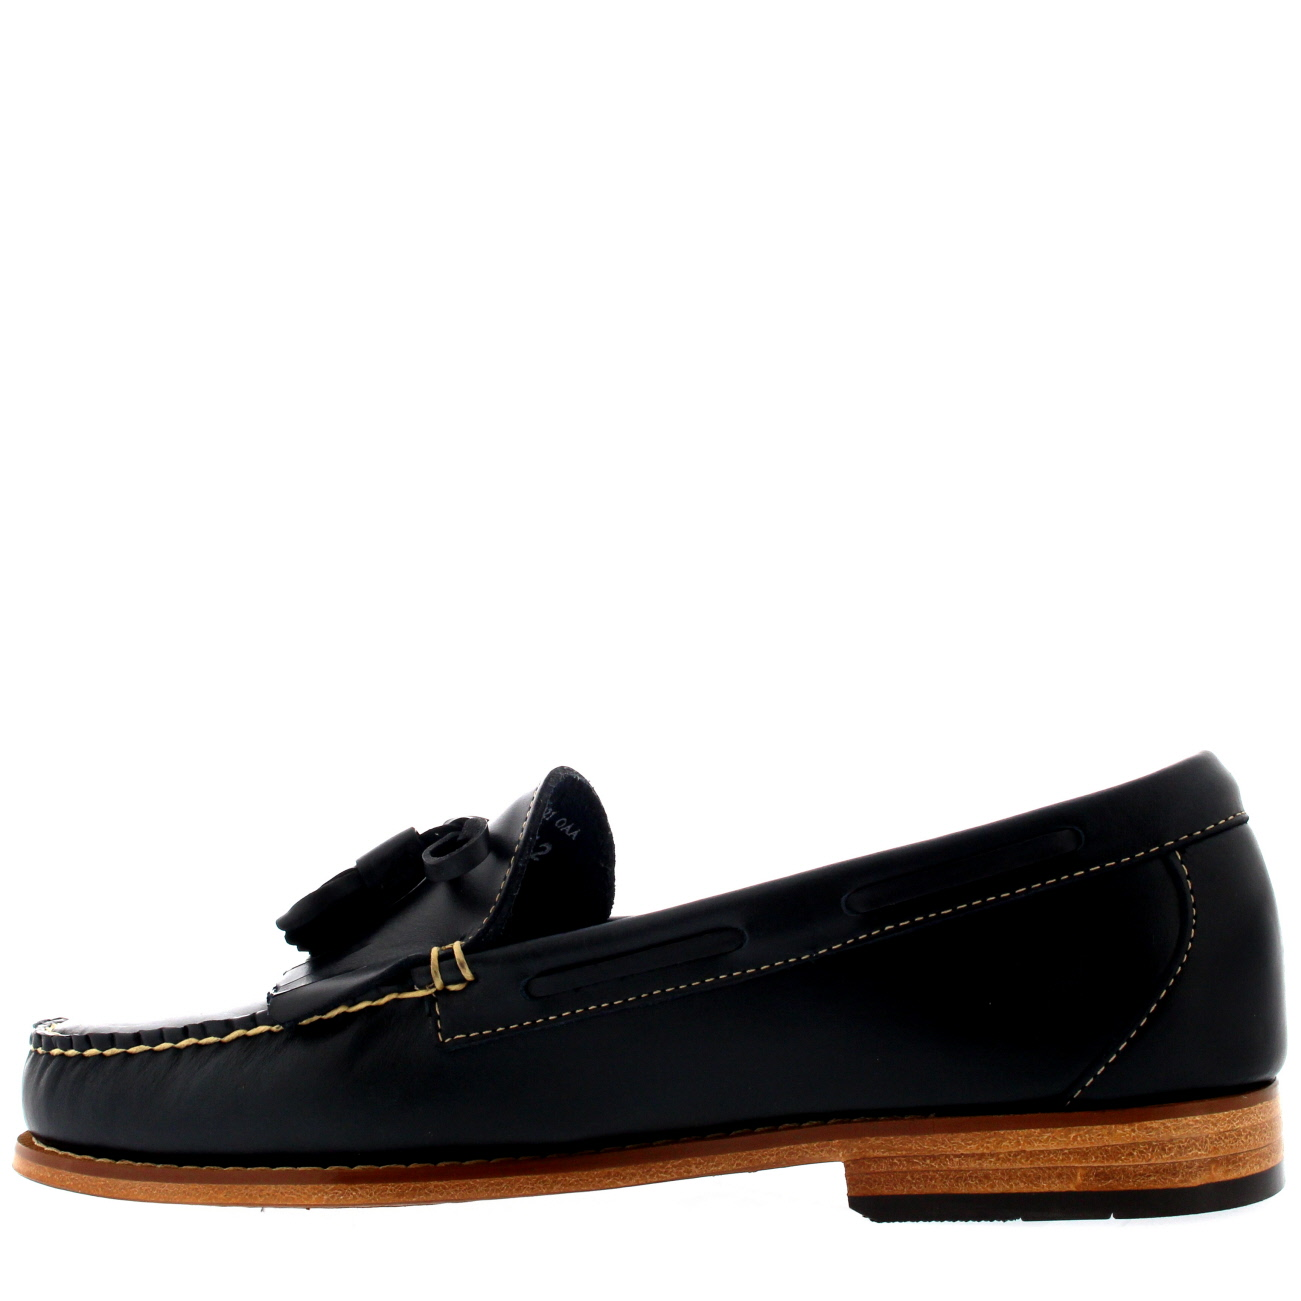 Mens G.H G.H G.H Bass Weejuns Layton Pull Up Kiltie Smart Leather Loafers schuhe UK 6-12 5e51a0